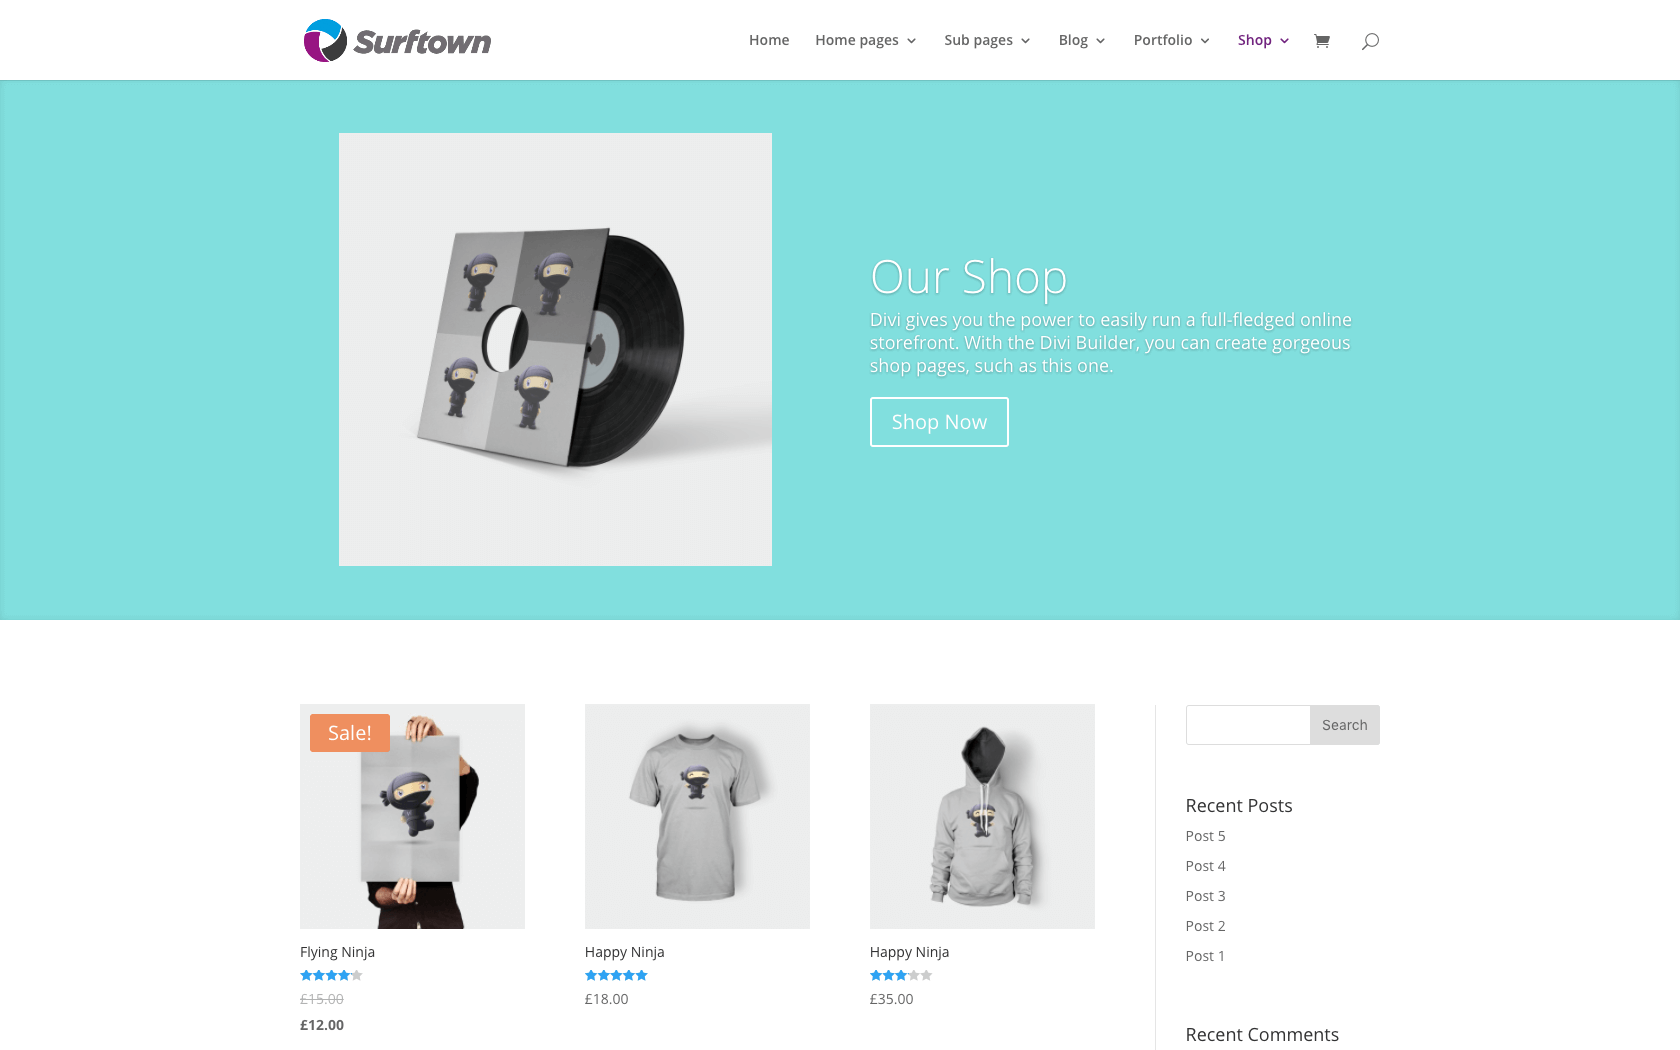 surftown-wp-shop-webshop-layout-4